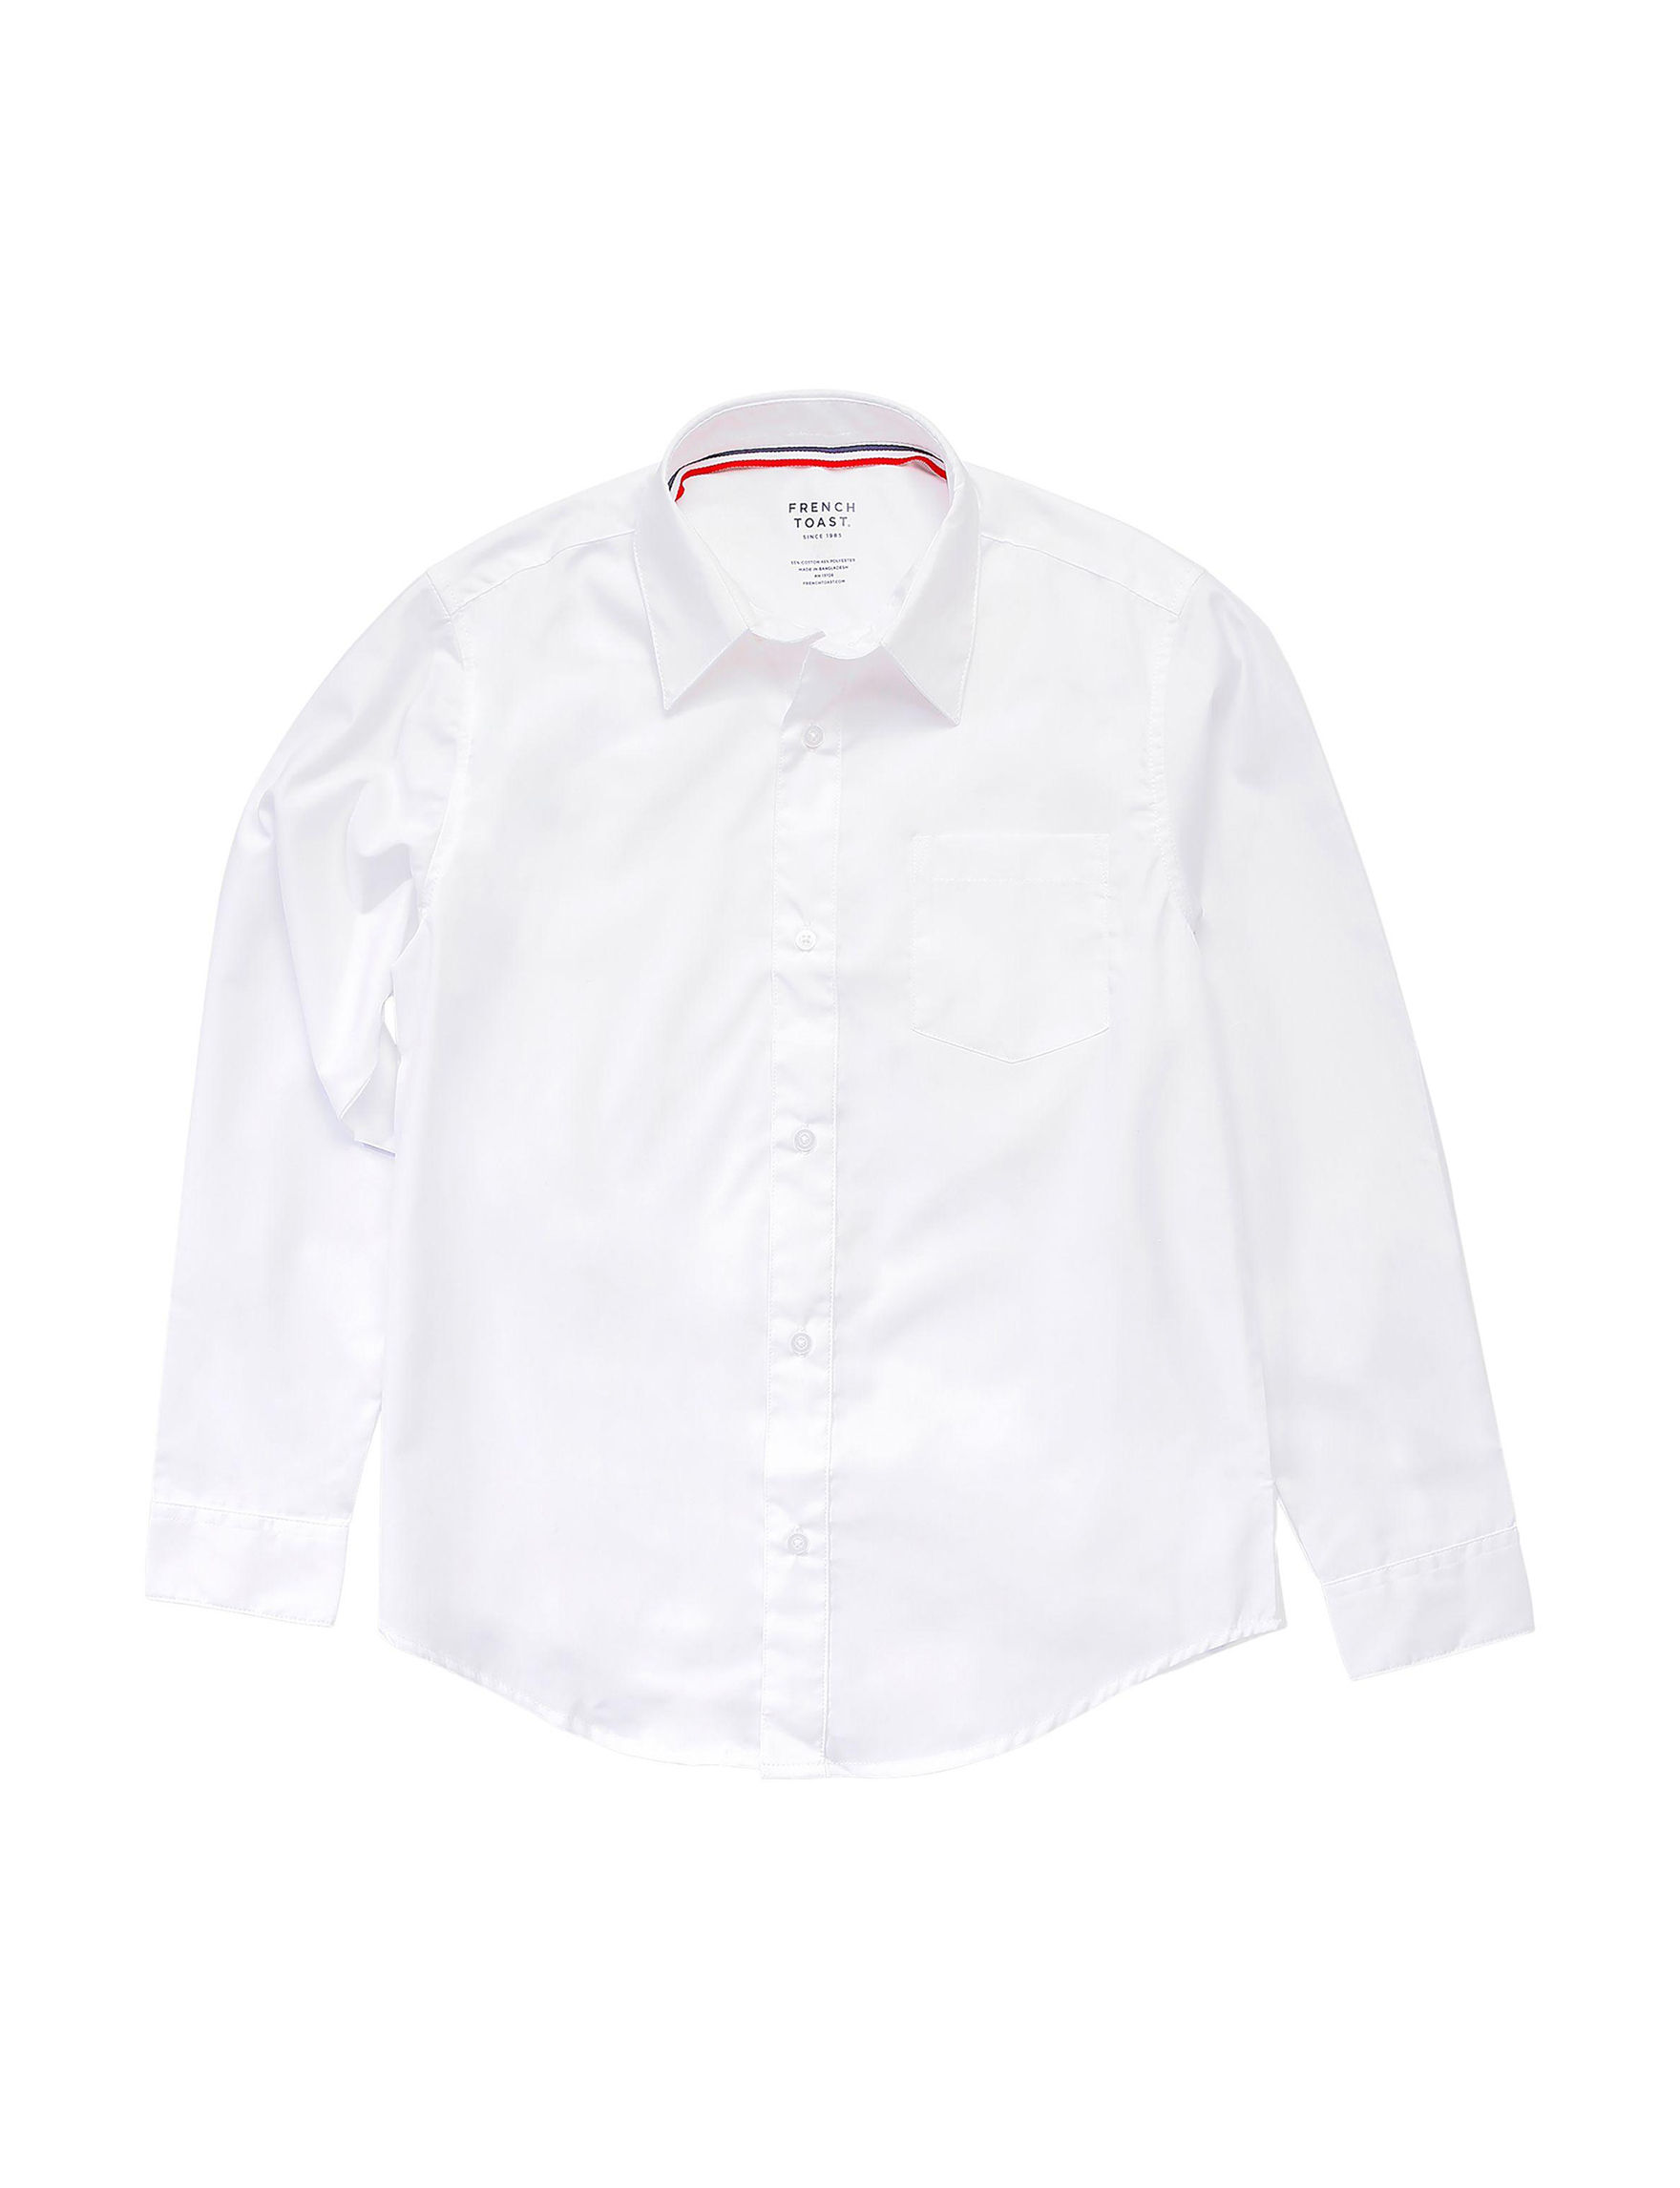 French Toast White Shirts & Blouses